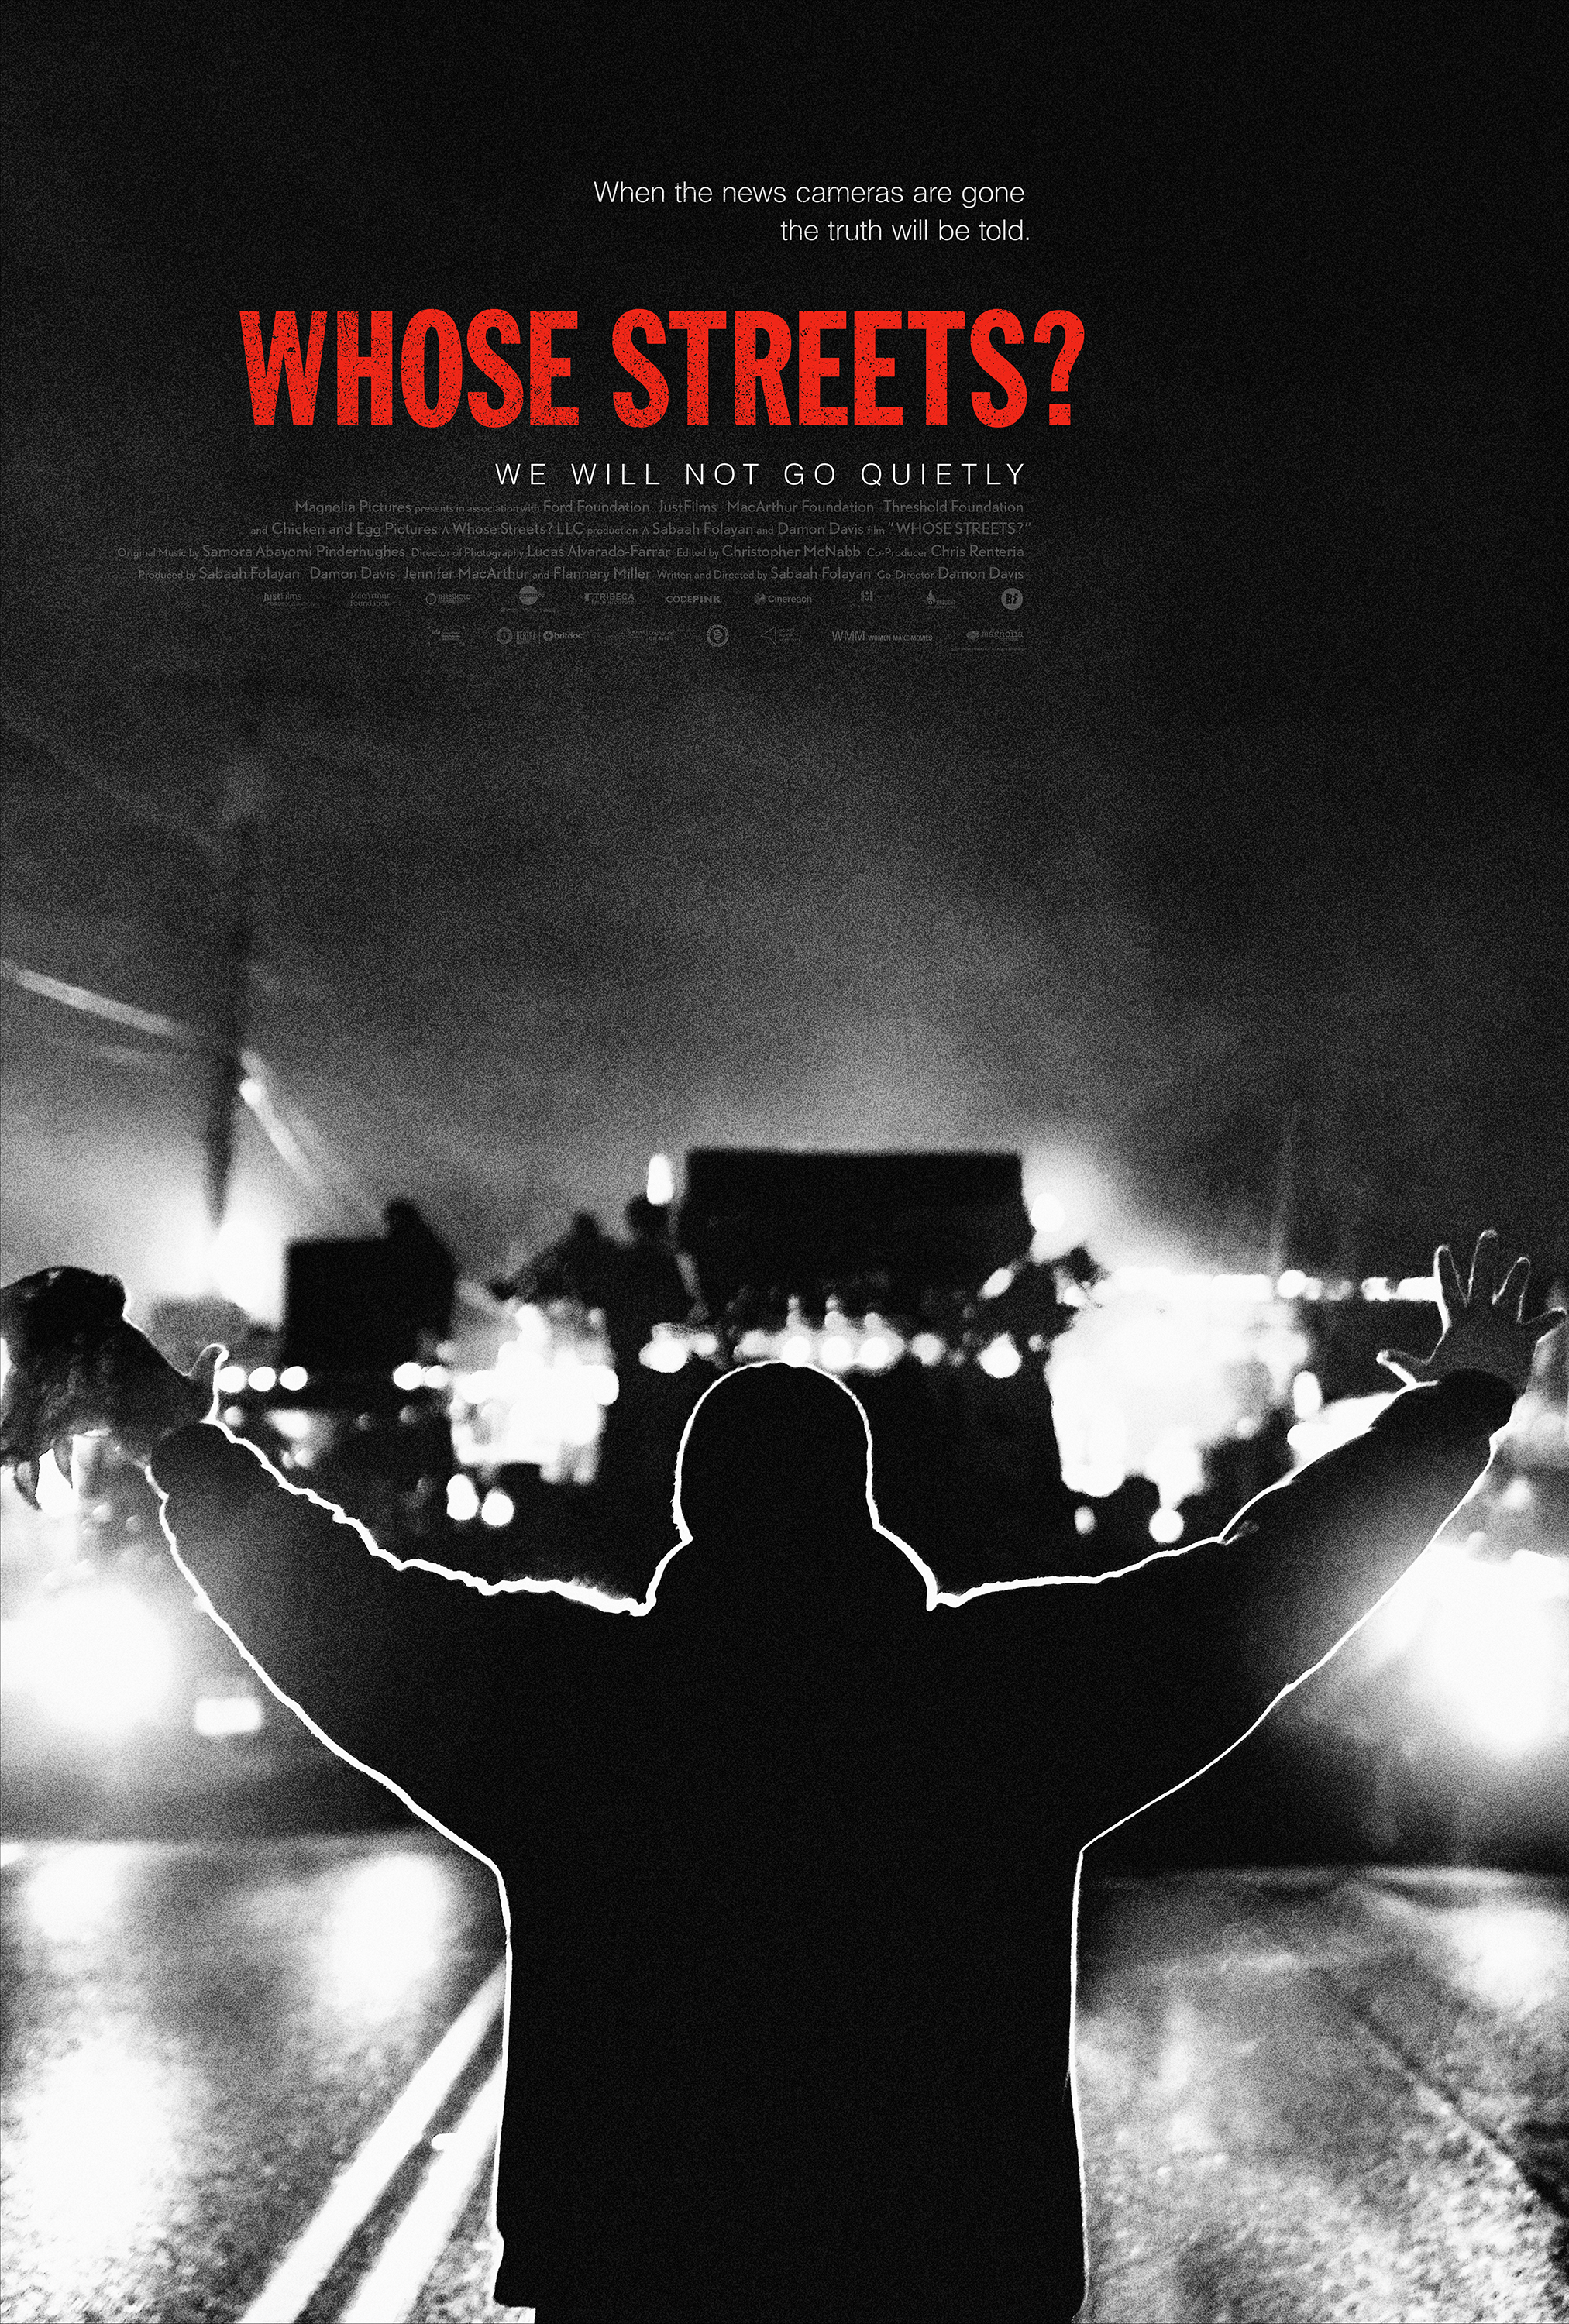 Image: Theatrical one-sheet for Whose Streets? documentary film, a Magnolia Pictures release. Released on August 11th, 2017.